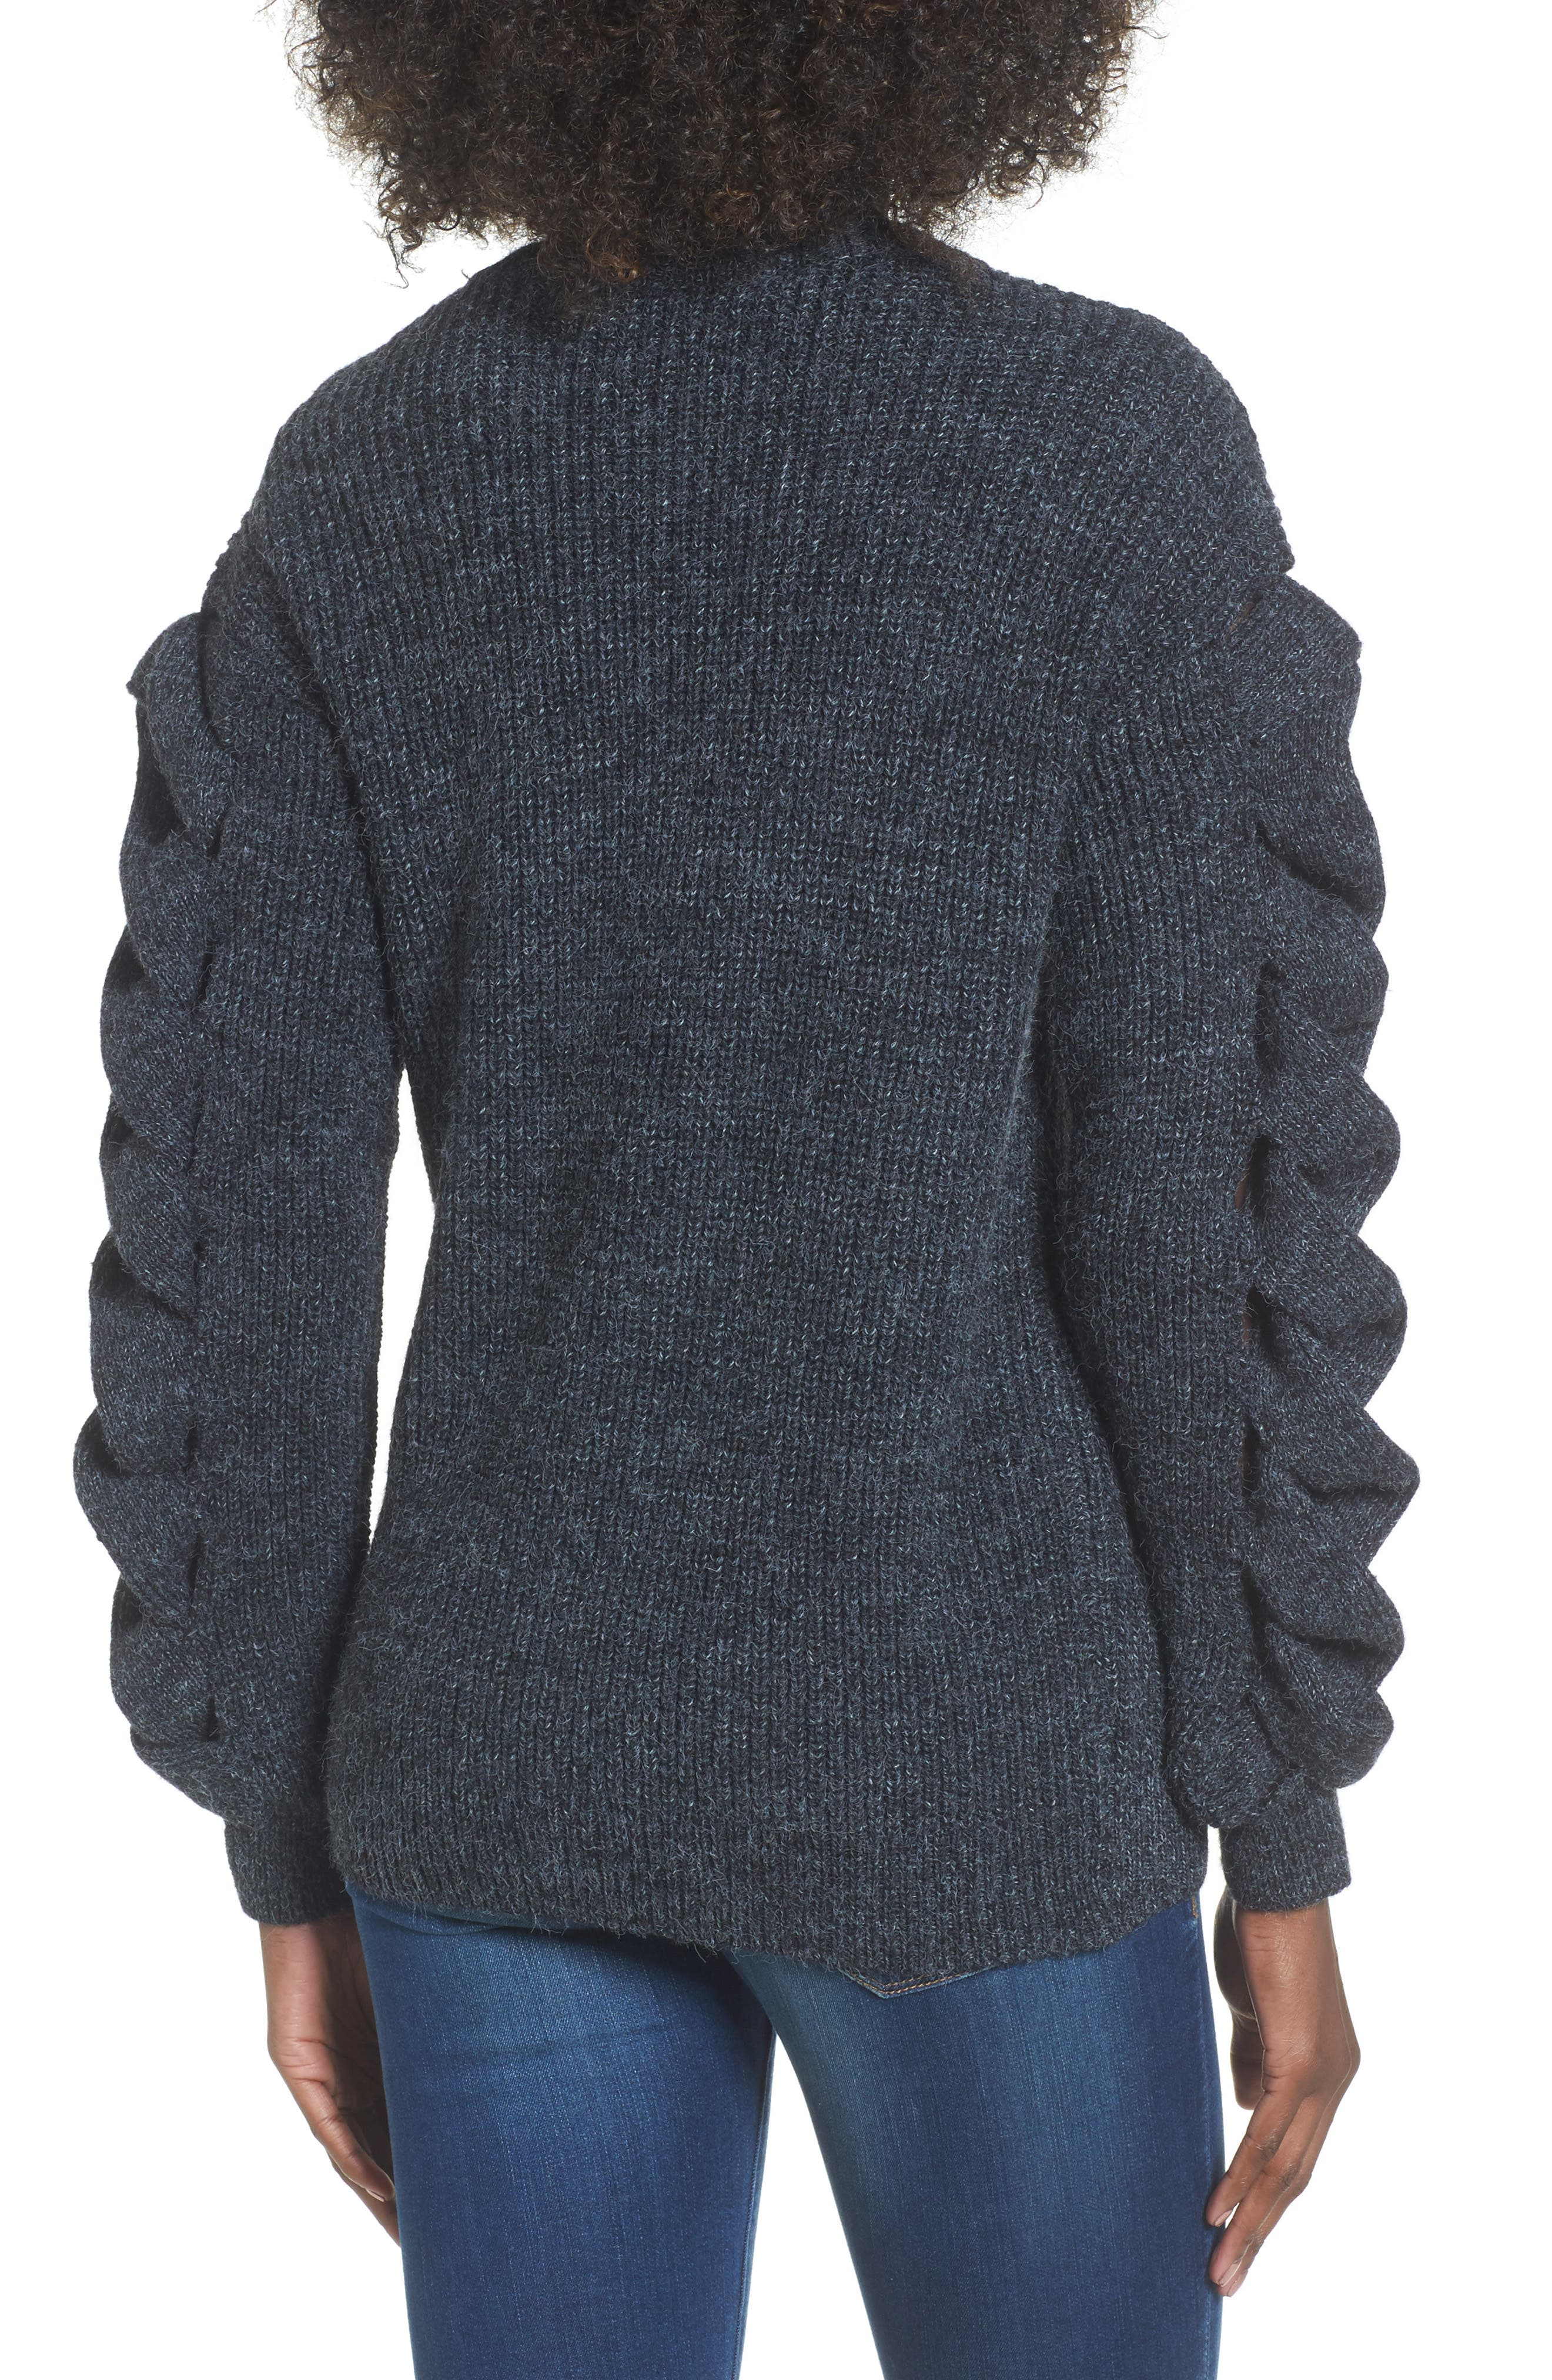 Twist Sleeve Sweater,                             Alternate thumbnail 2, color,                             030